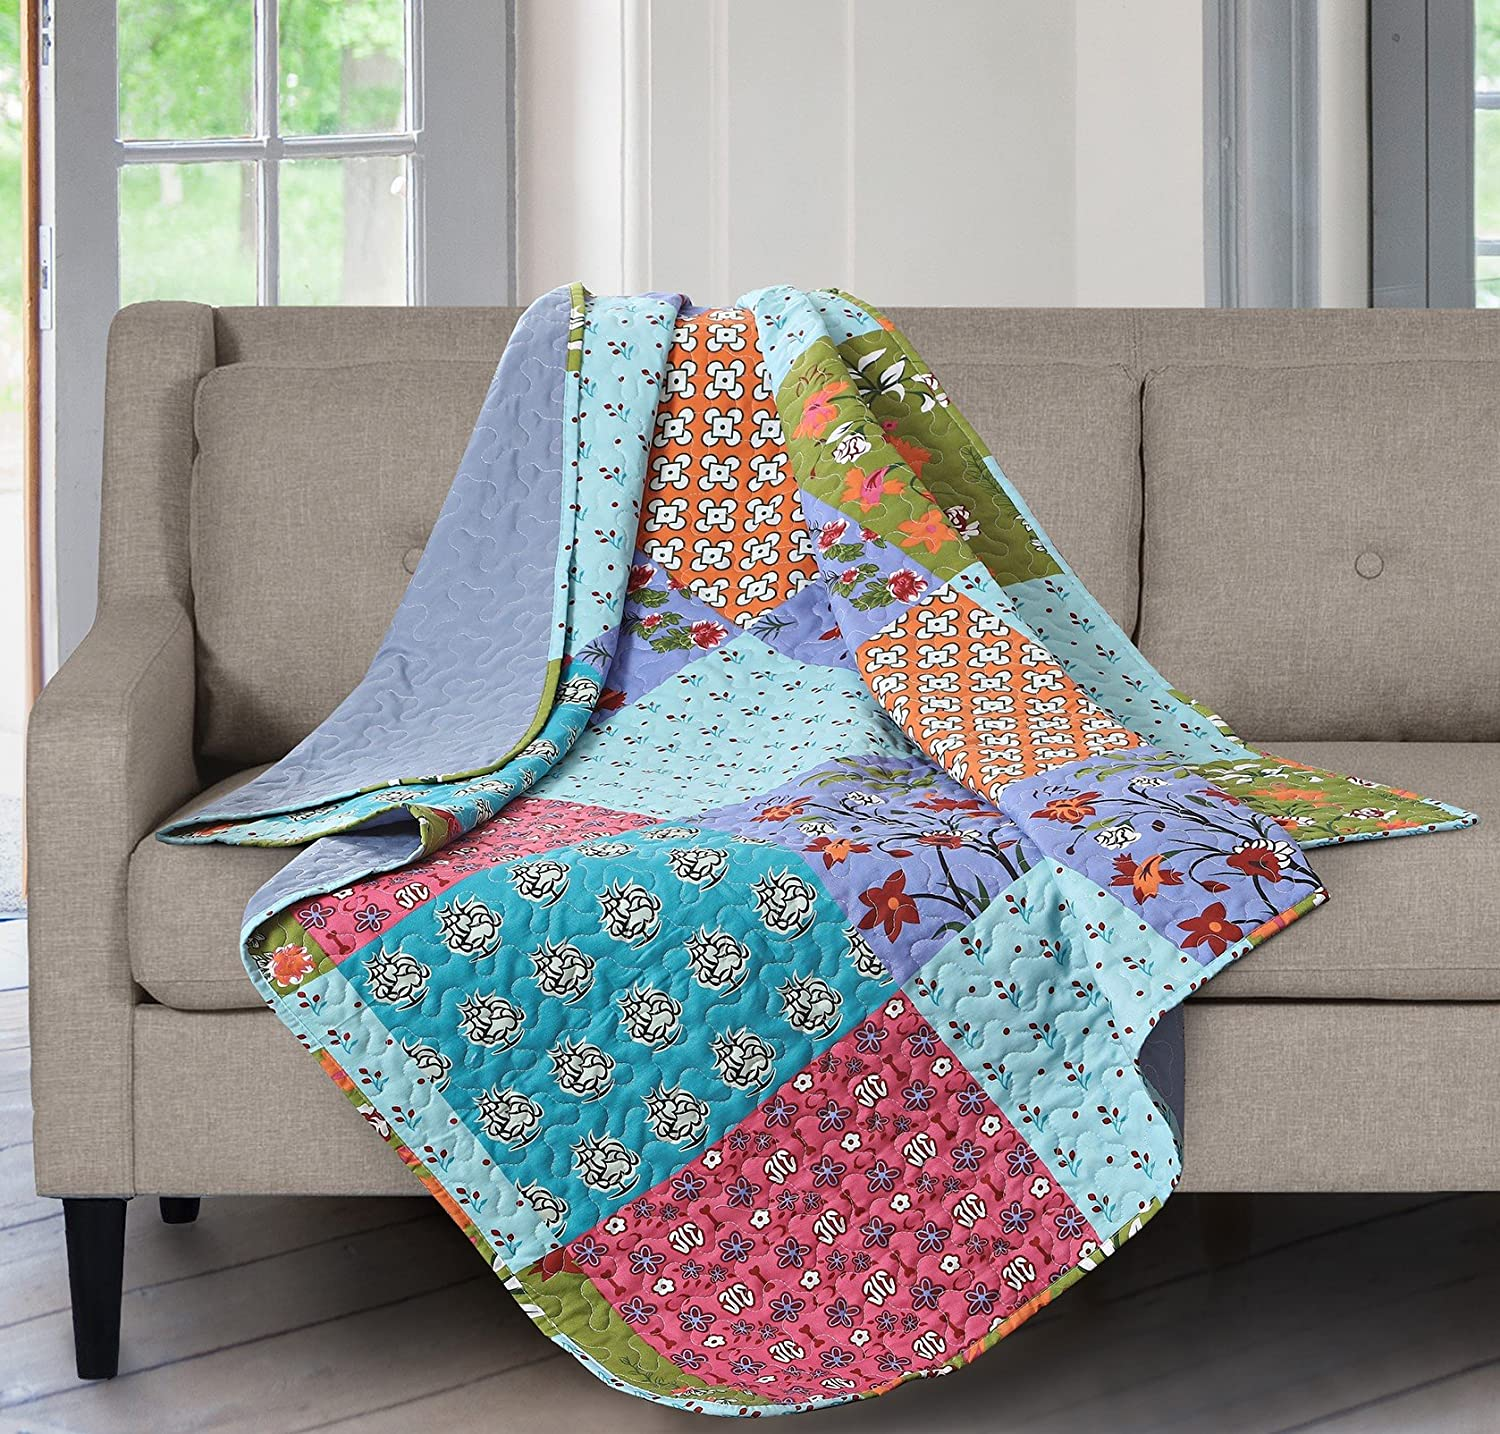 All is Bright Printed Quilted Throw Blanket (50